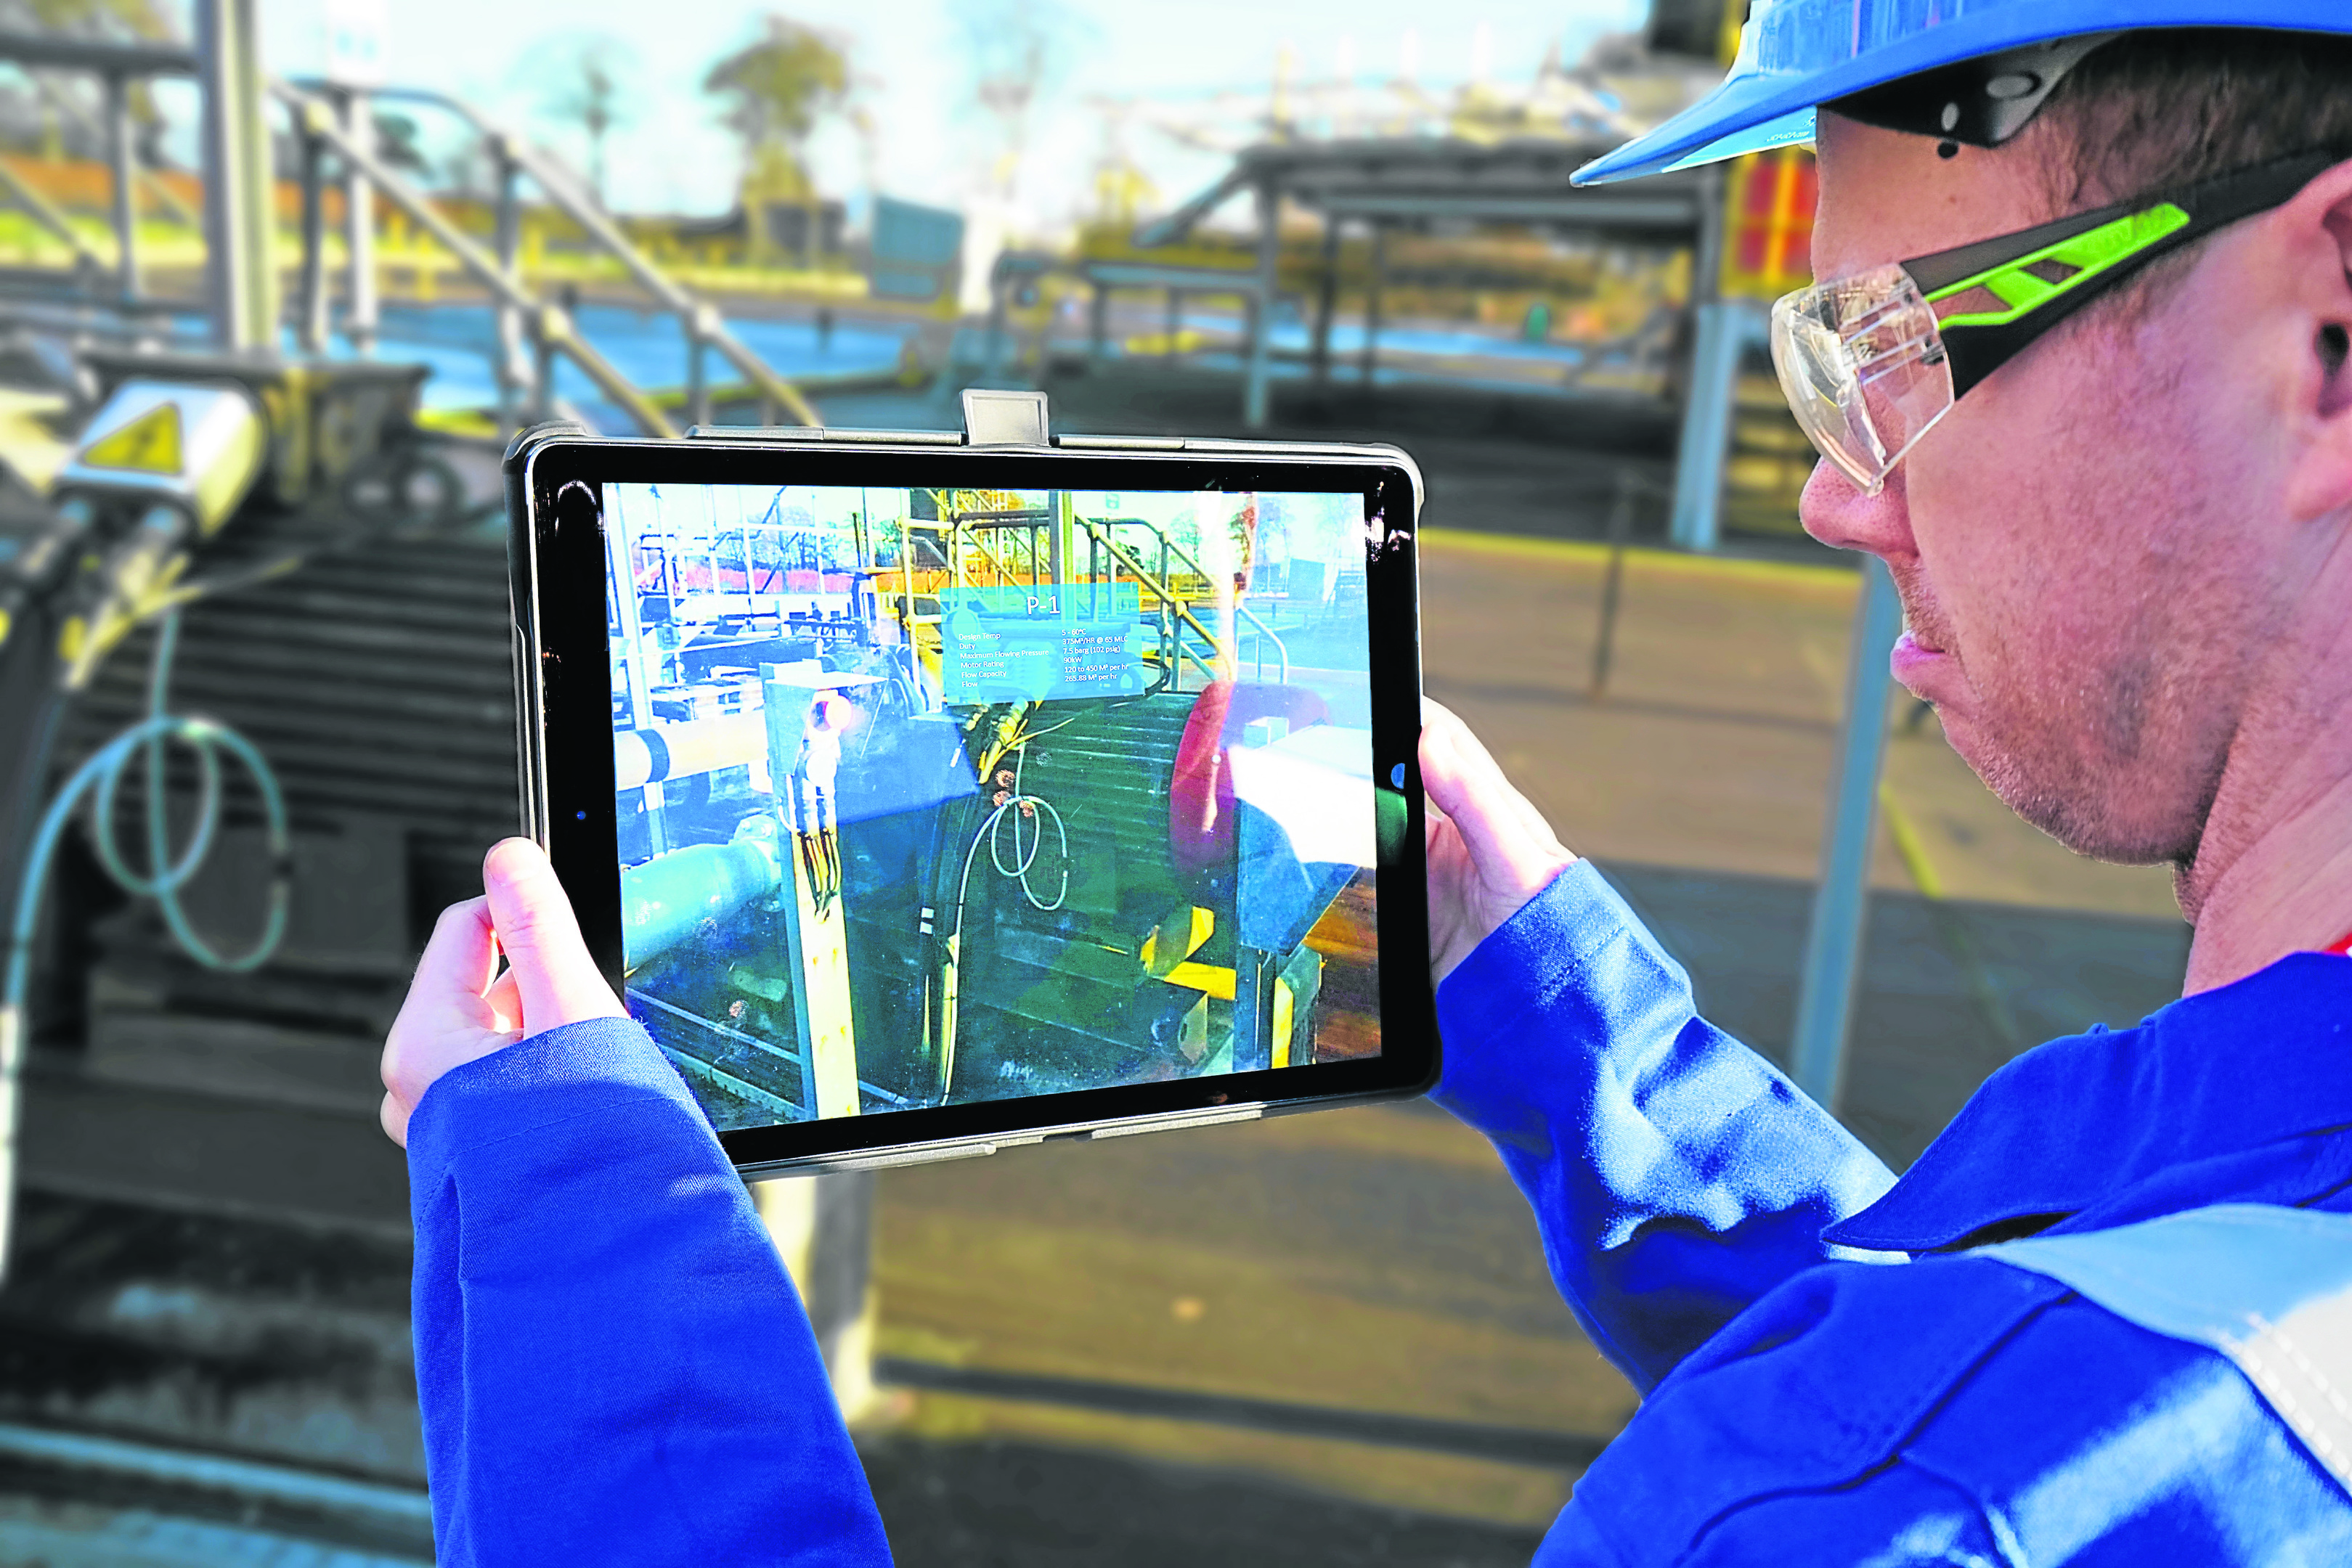 Immersive technologies, such as those photographed, are making progress towards being accepted by oil and gas